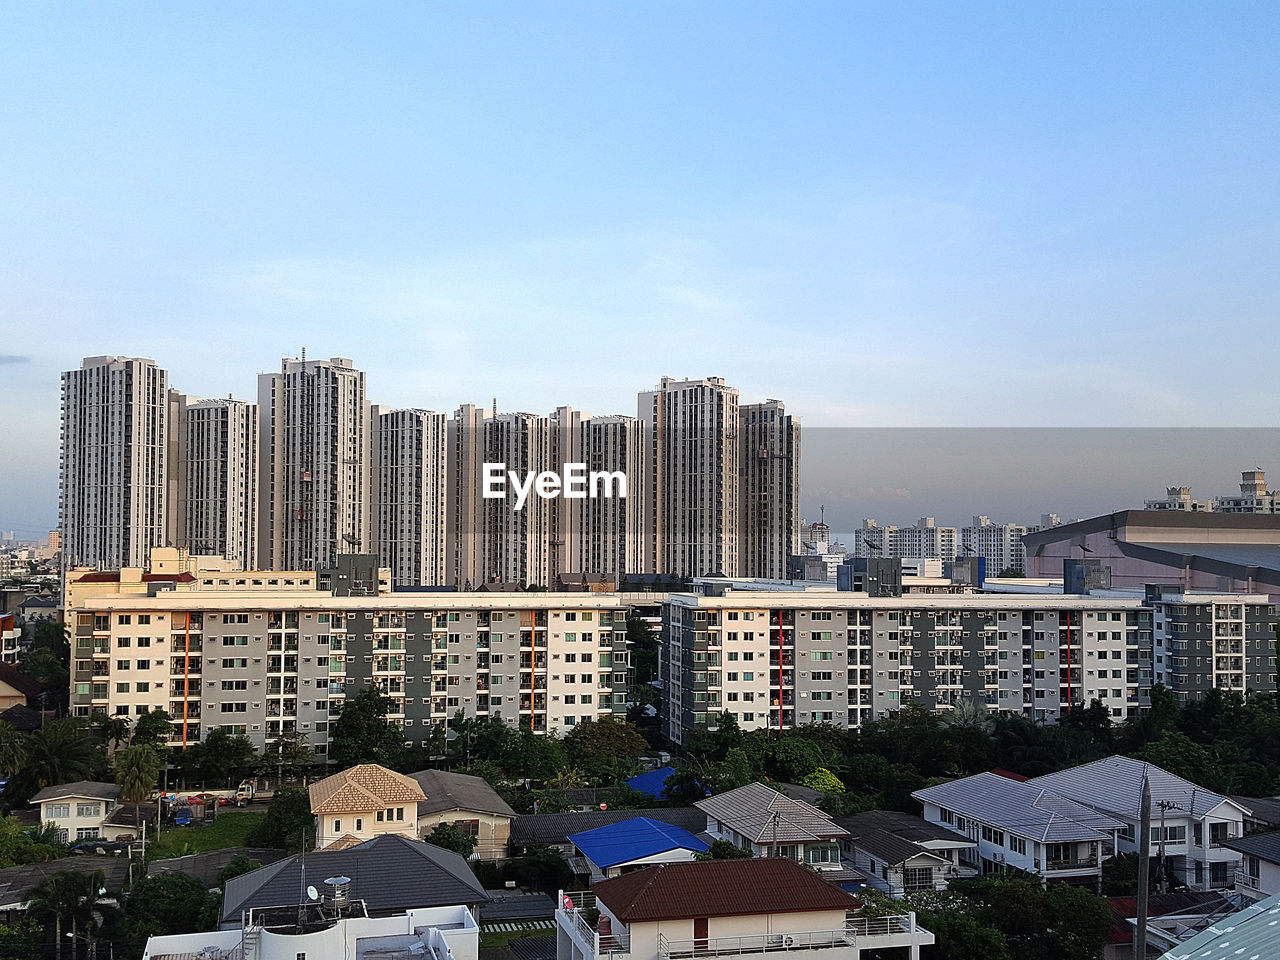 building exterior, architecture, built structure, city, sky, building, residential district, day, nature, cityscape, no people, office building exterior, tree, mode of transportation, tall - high, outdoors, urban skyline, plant, high angle view, landscape, skyscraper, apartment, settlement